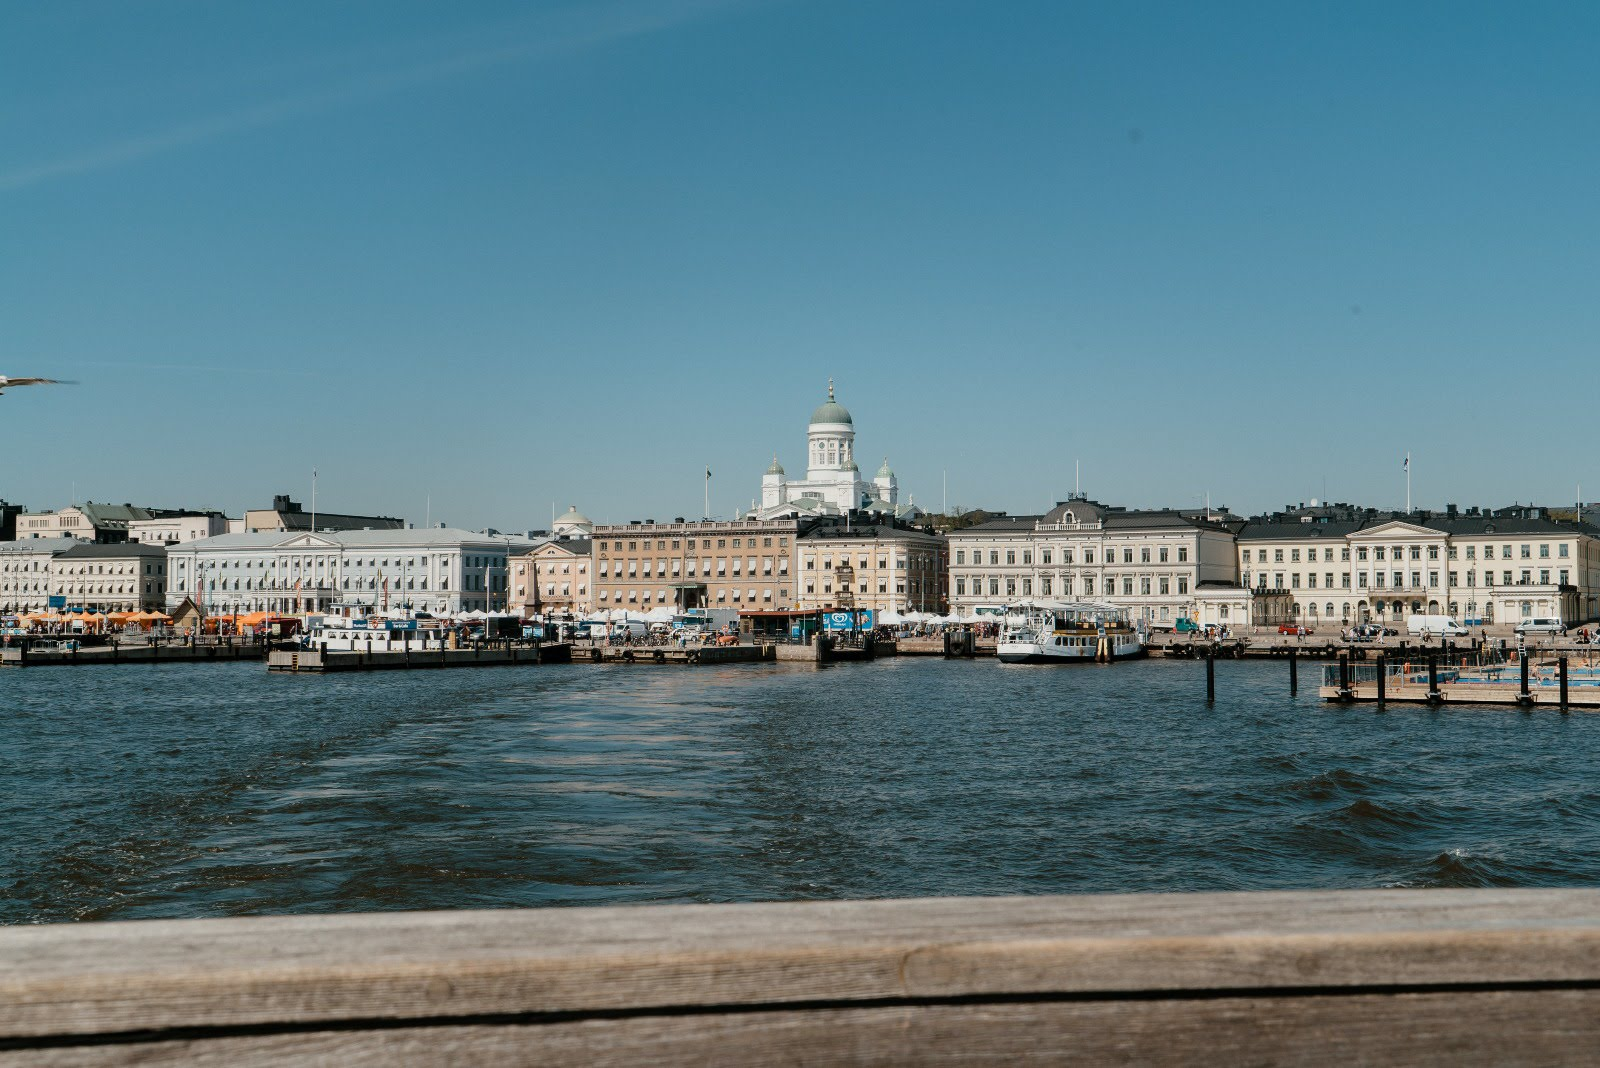 Finland Summer Travel Guide: Five Things to Do in Helsinki 4